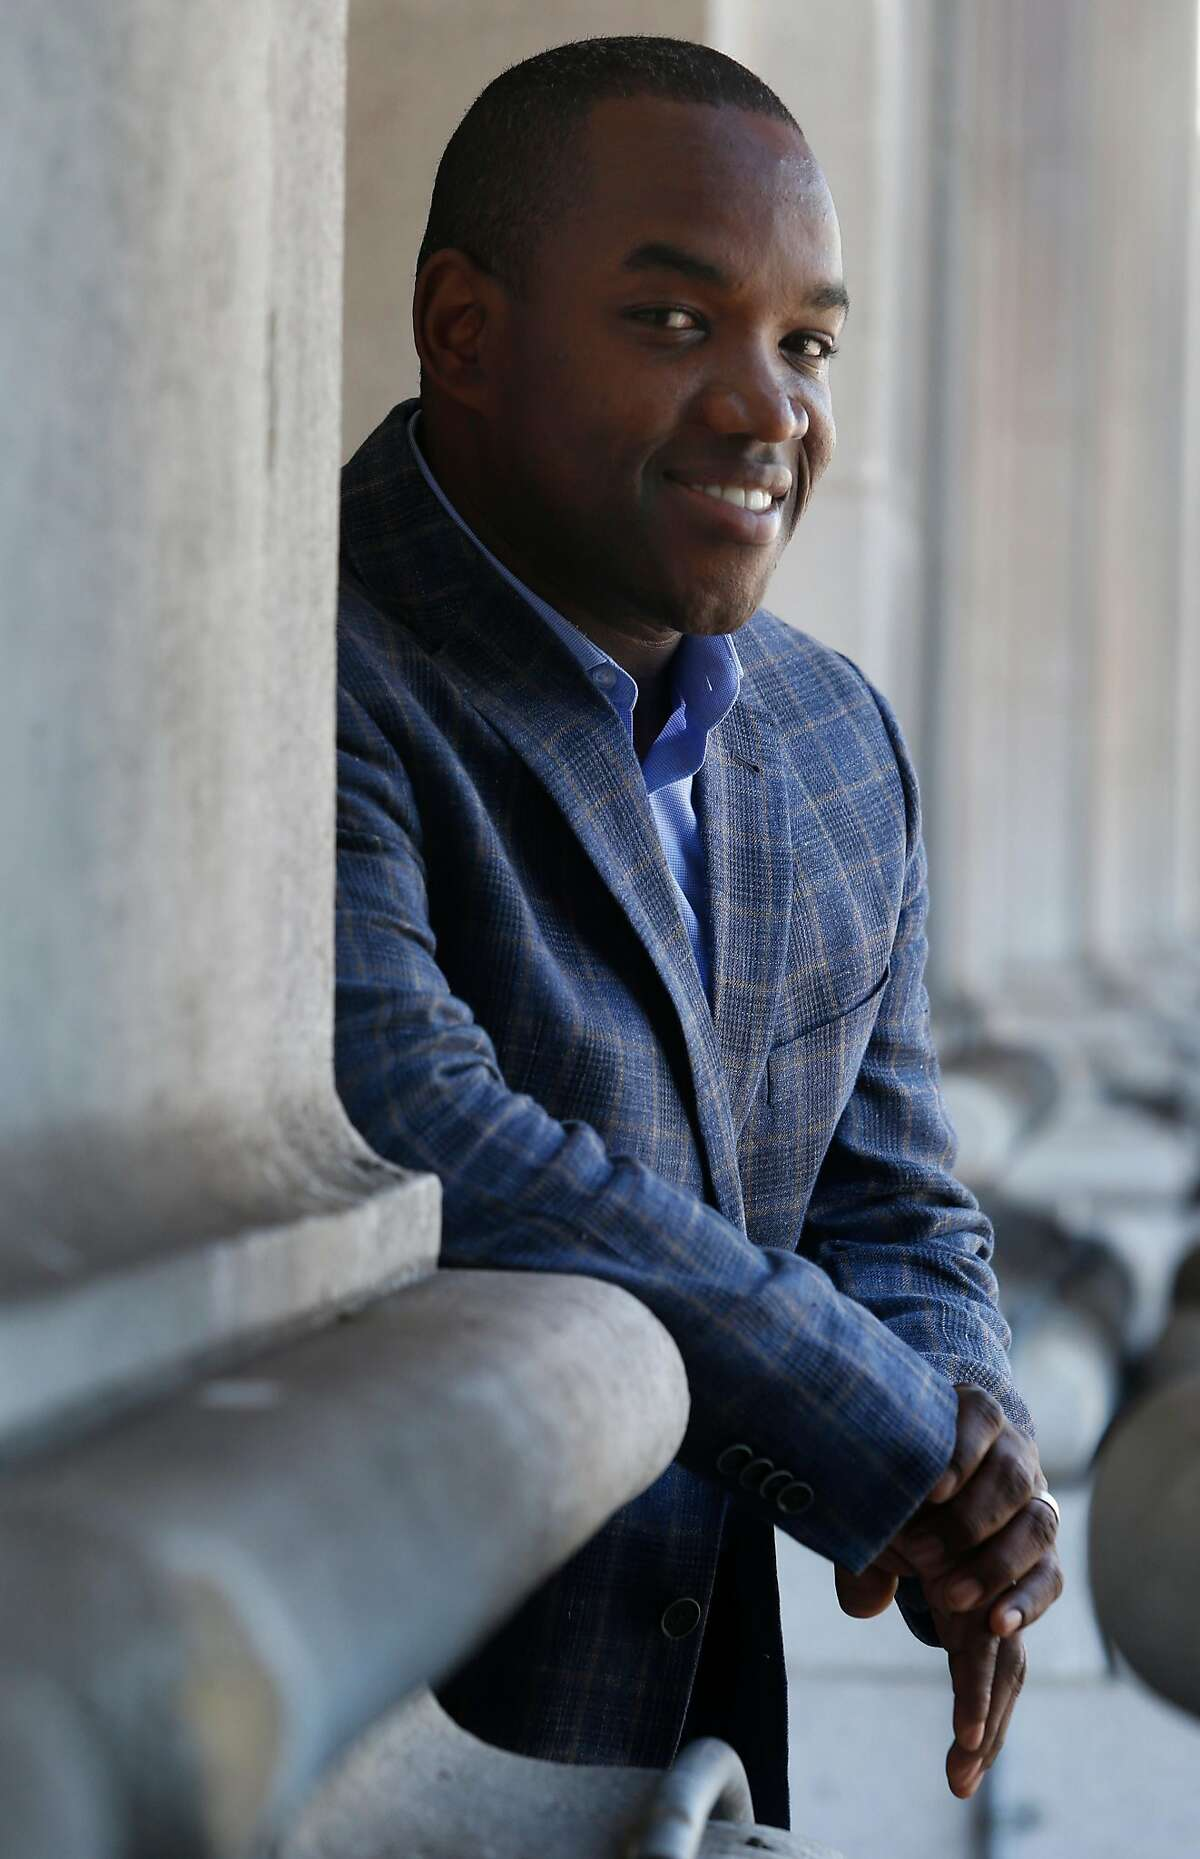 """Operatic tenor Lawrence Brownlee visits the War Memorial Opera House in San Francisco, Calif. on Thursday, Sept. 22, 2016. Brownlee is appearing in his debut with the San Francisco Opera in the upcoming production of """"Don Pasquale"""" opening on Sept. 28."""